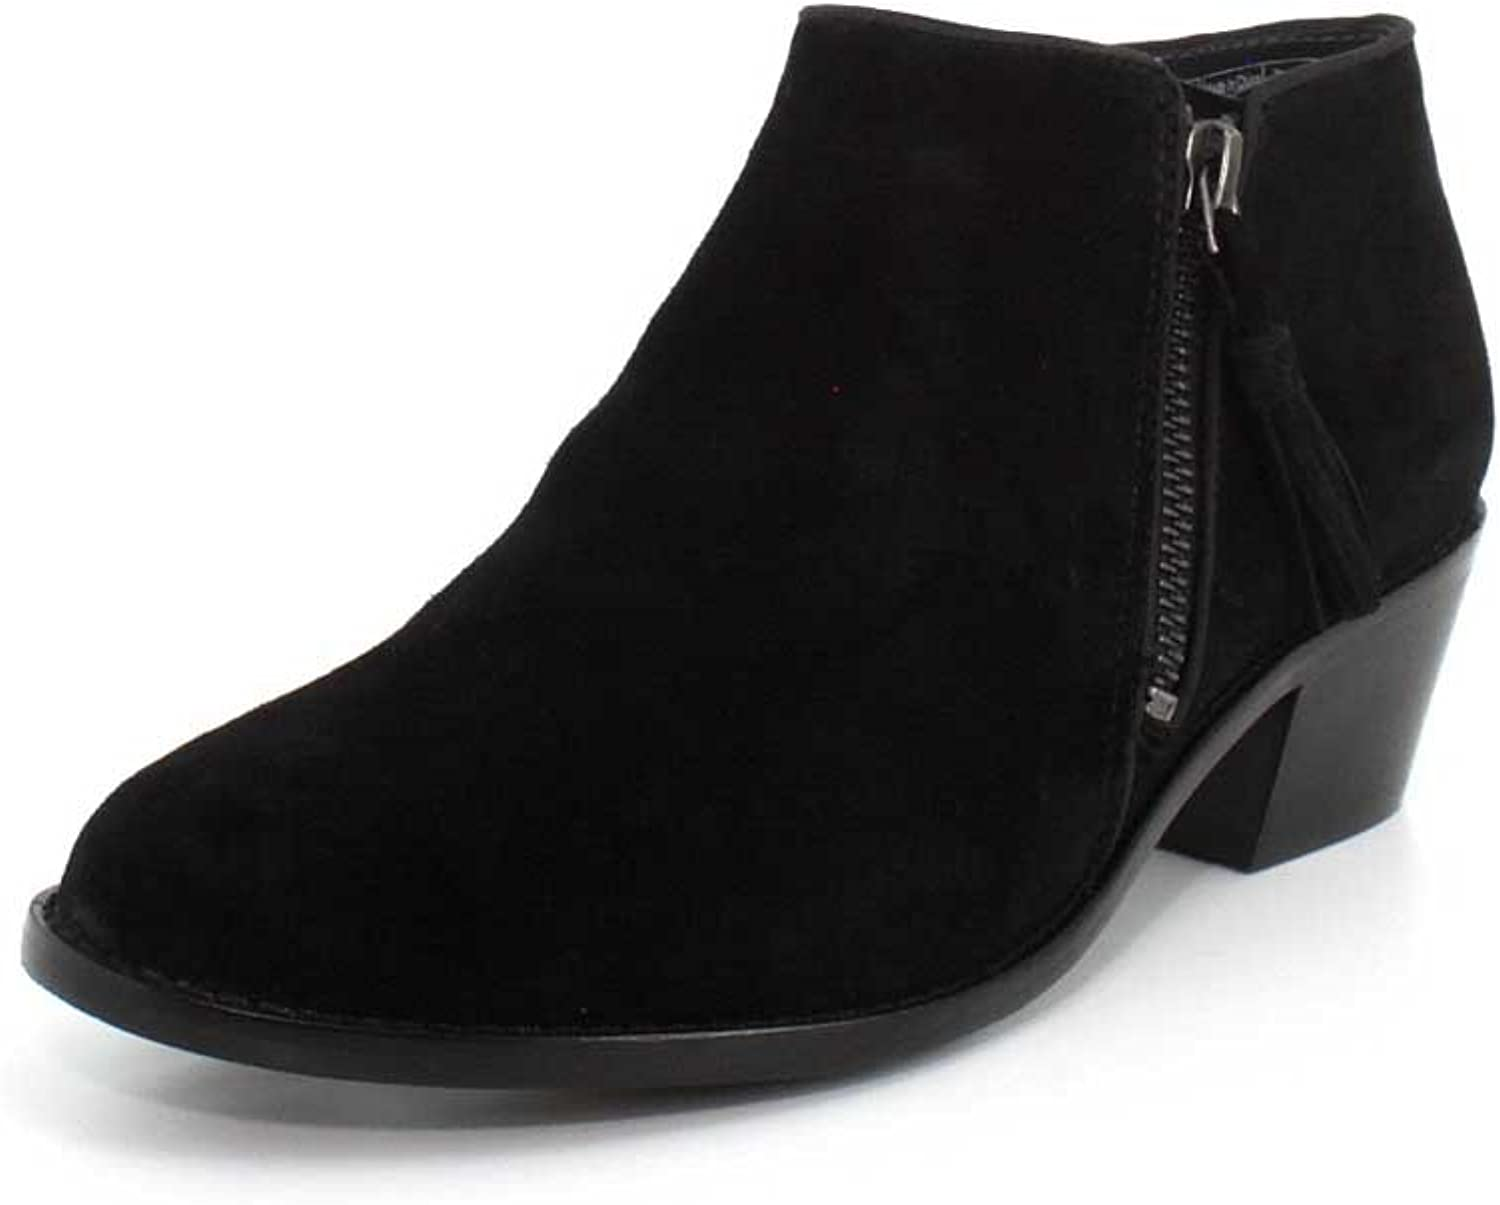 Vionic Women's Serena Ankle Boot In Black